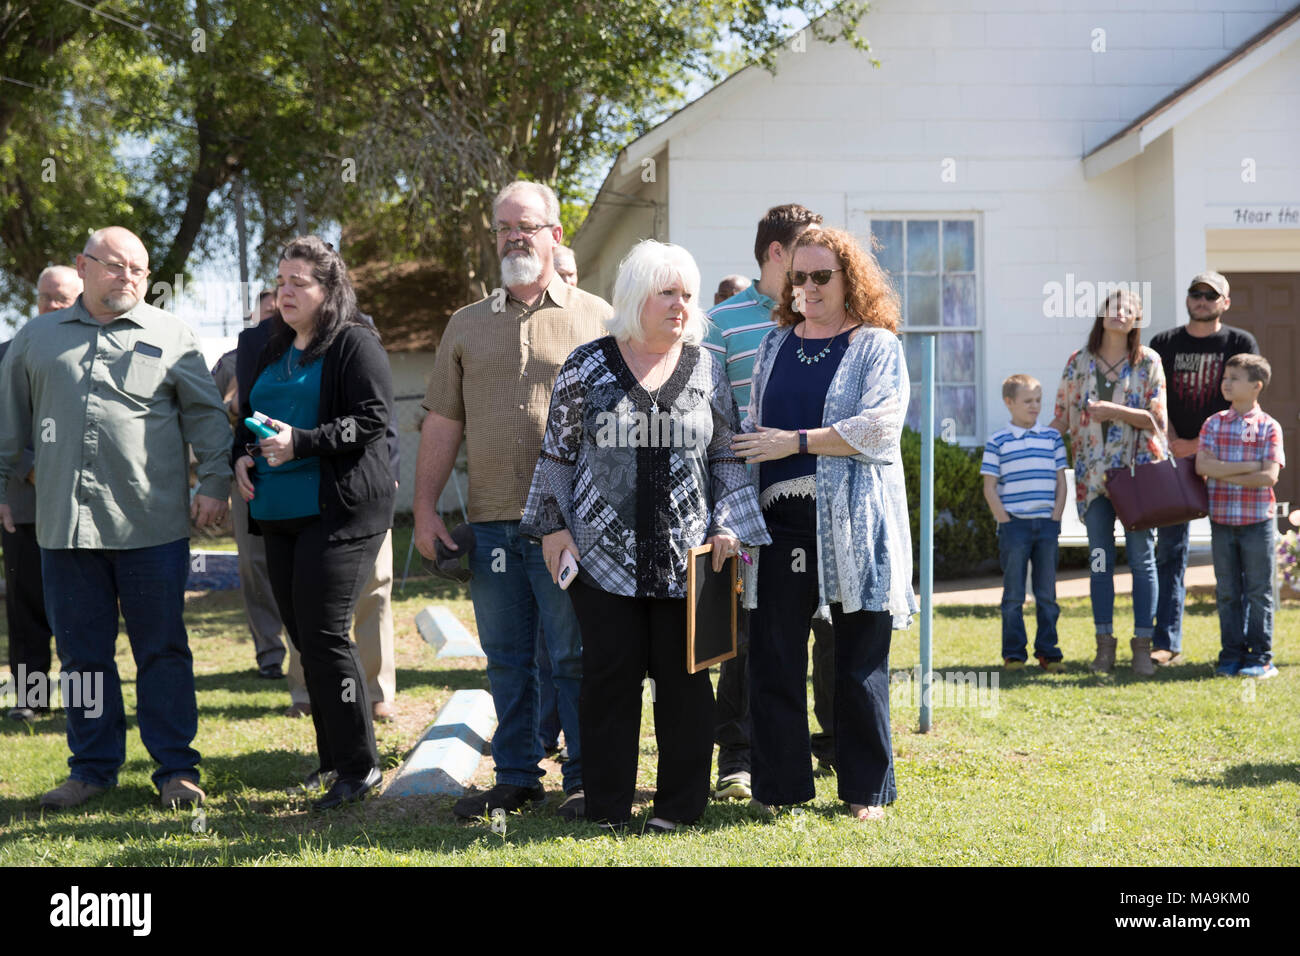 Survivors of the Sutherland Springs, TX, church shooting that claimed 26 lives in November 2017 listen outside the church as U.S. Sen. John Cornyn discusses his Fix NICS Act, signed into law on March 23rd. - Stock Image